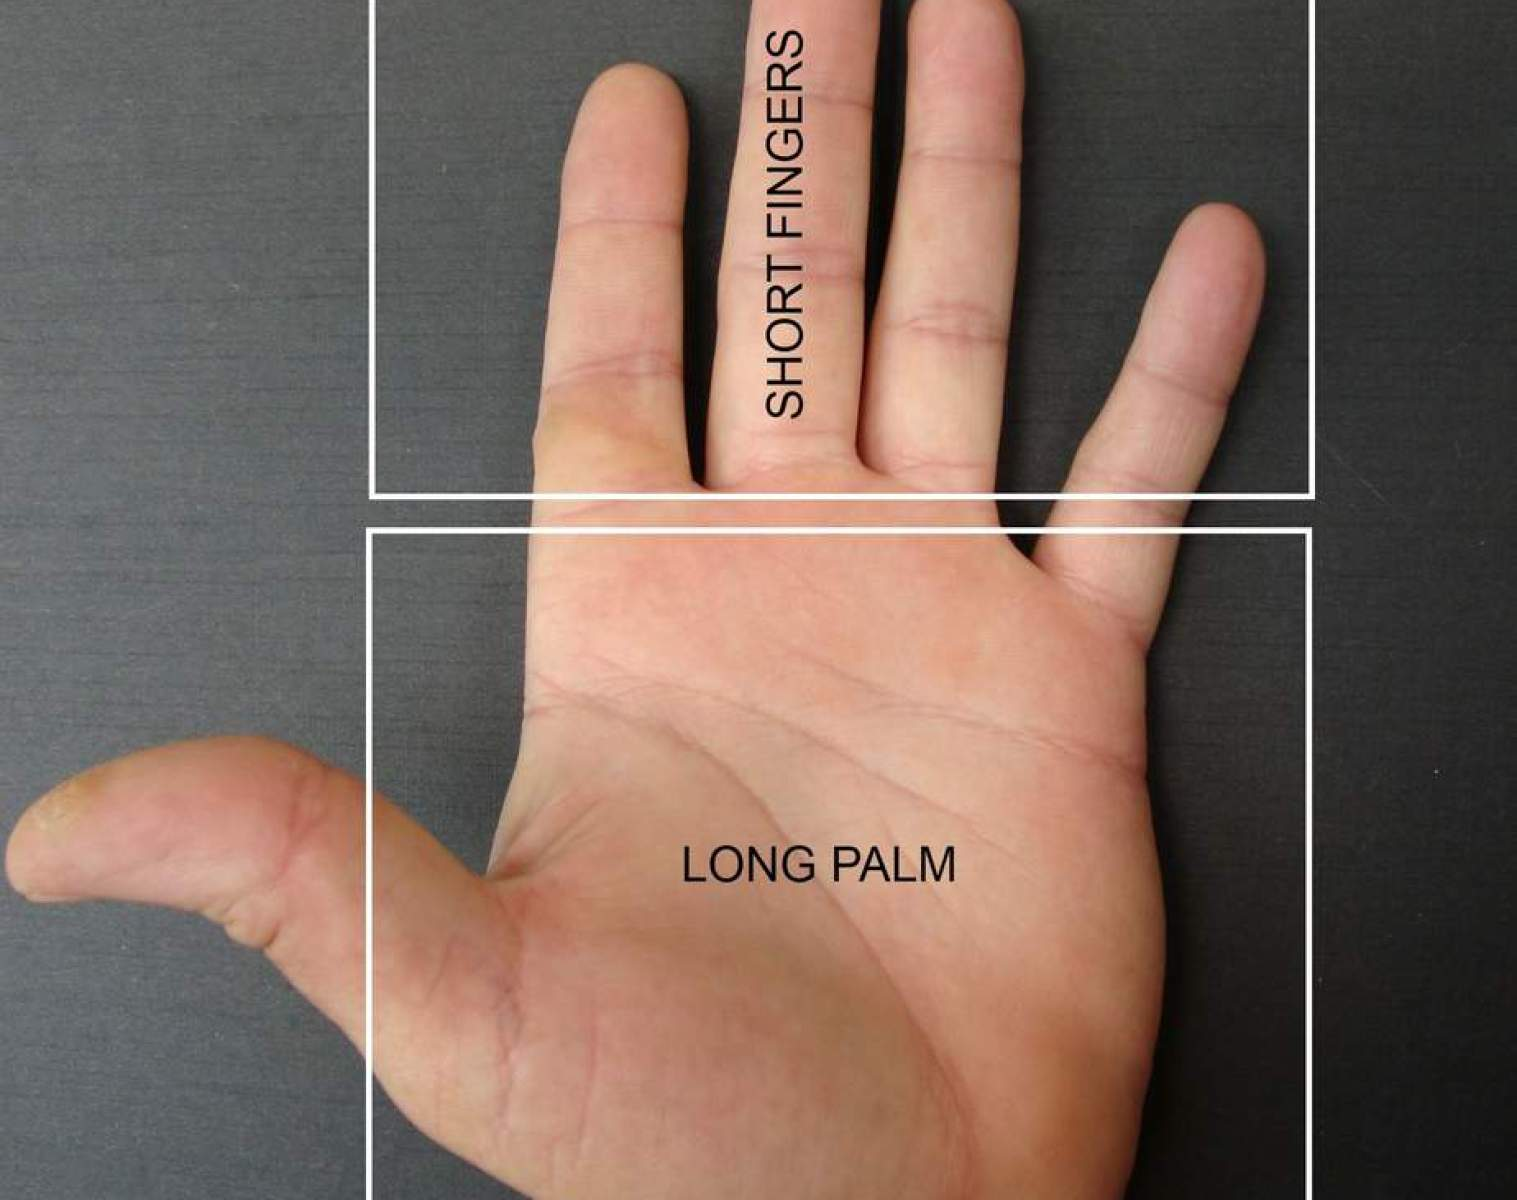 long fingers, fire shaped hand, short fingers, large palm. career in palms, career choices, finger length